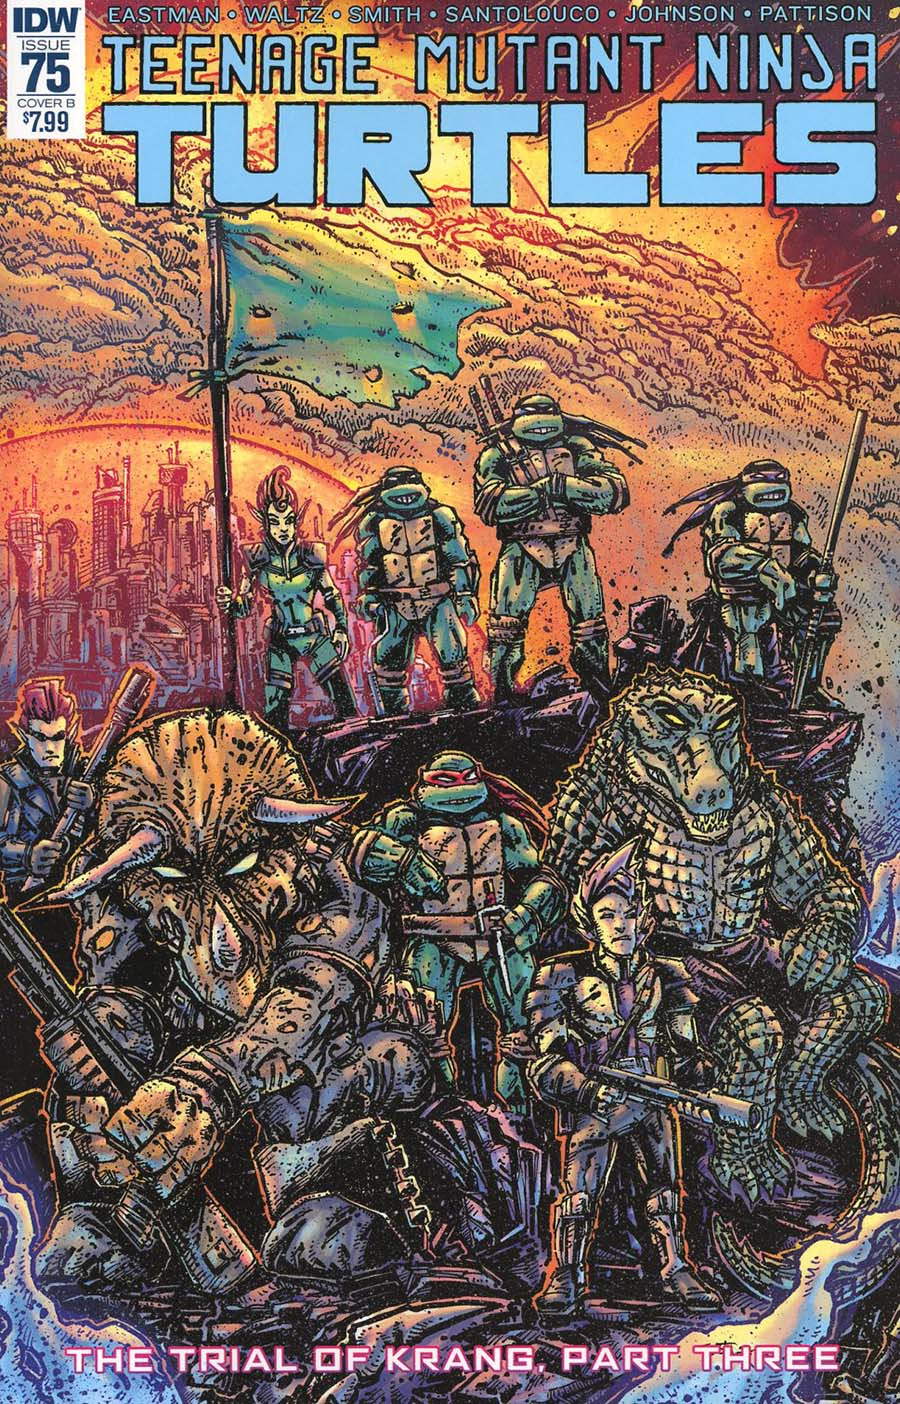 Teenage Mutant Ninja Turtles Vol 5 #75 Cover B Variant Kevin Eastman Cover